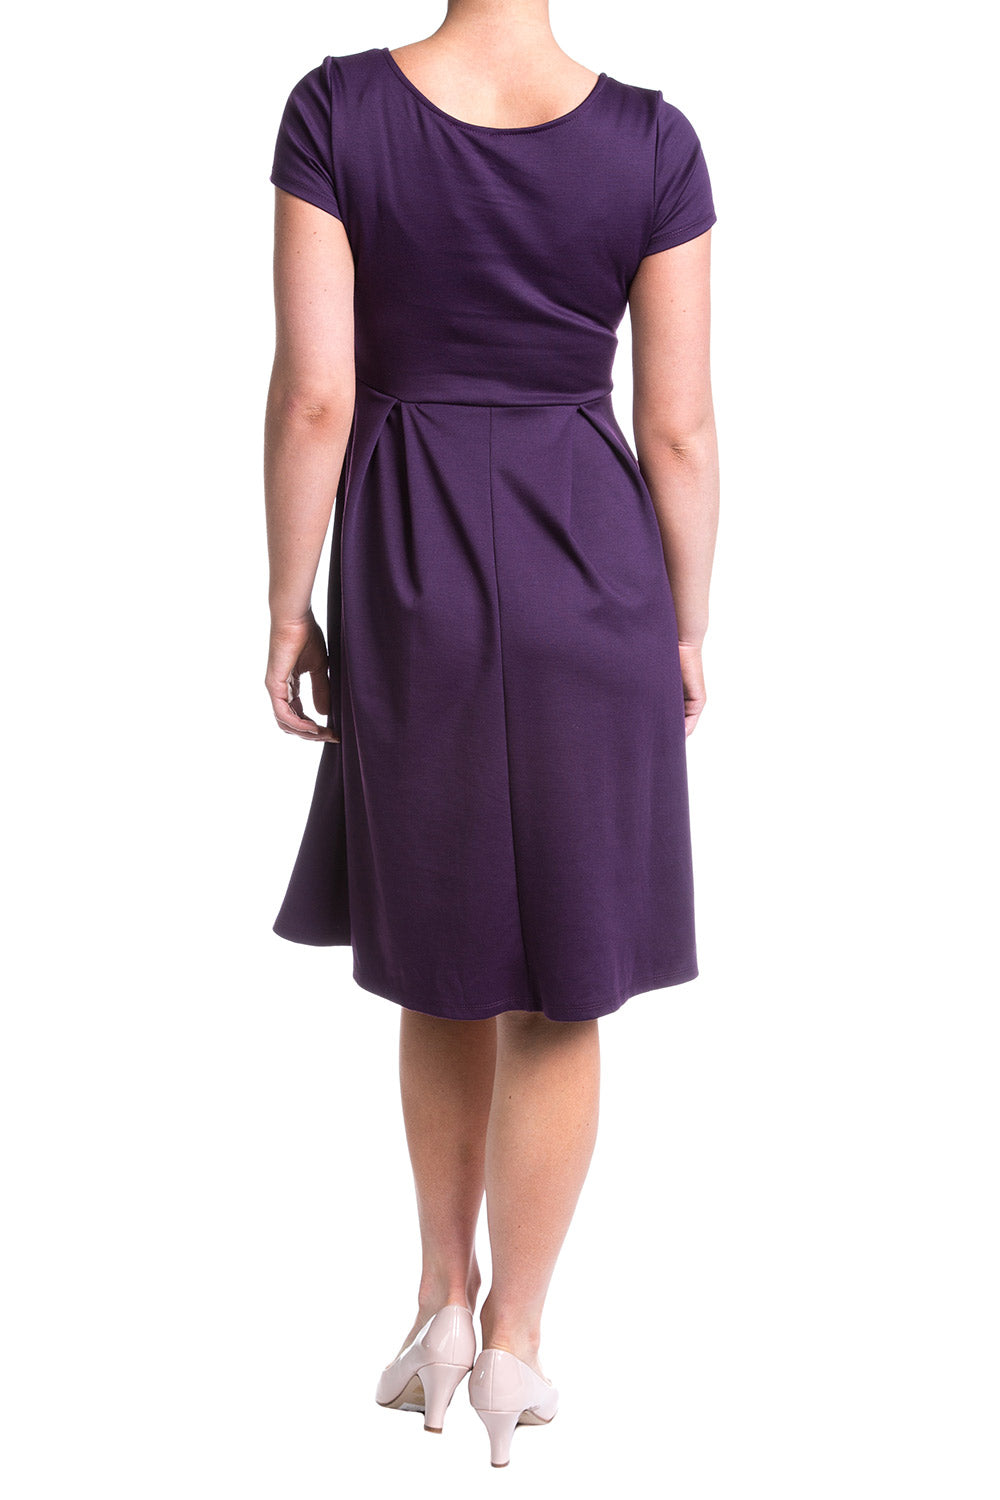 Type 2 To Life Dress In Eggplant